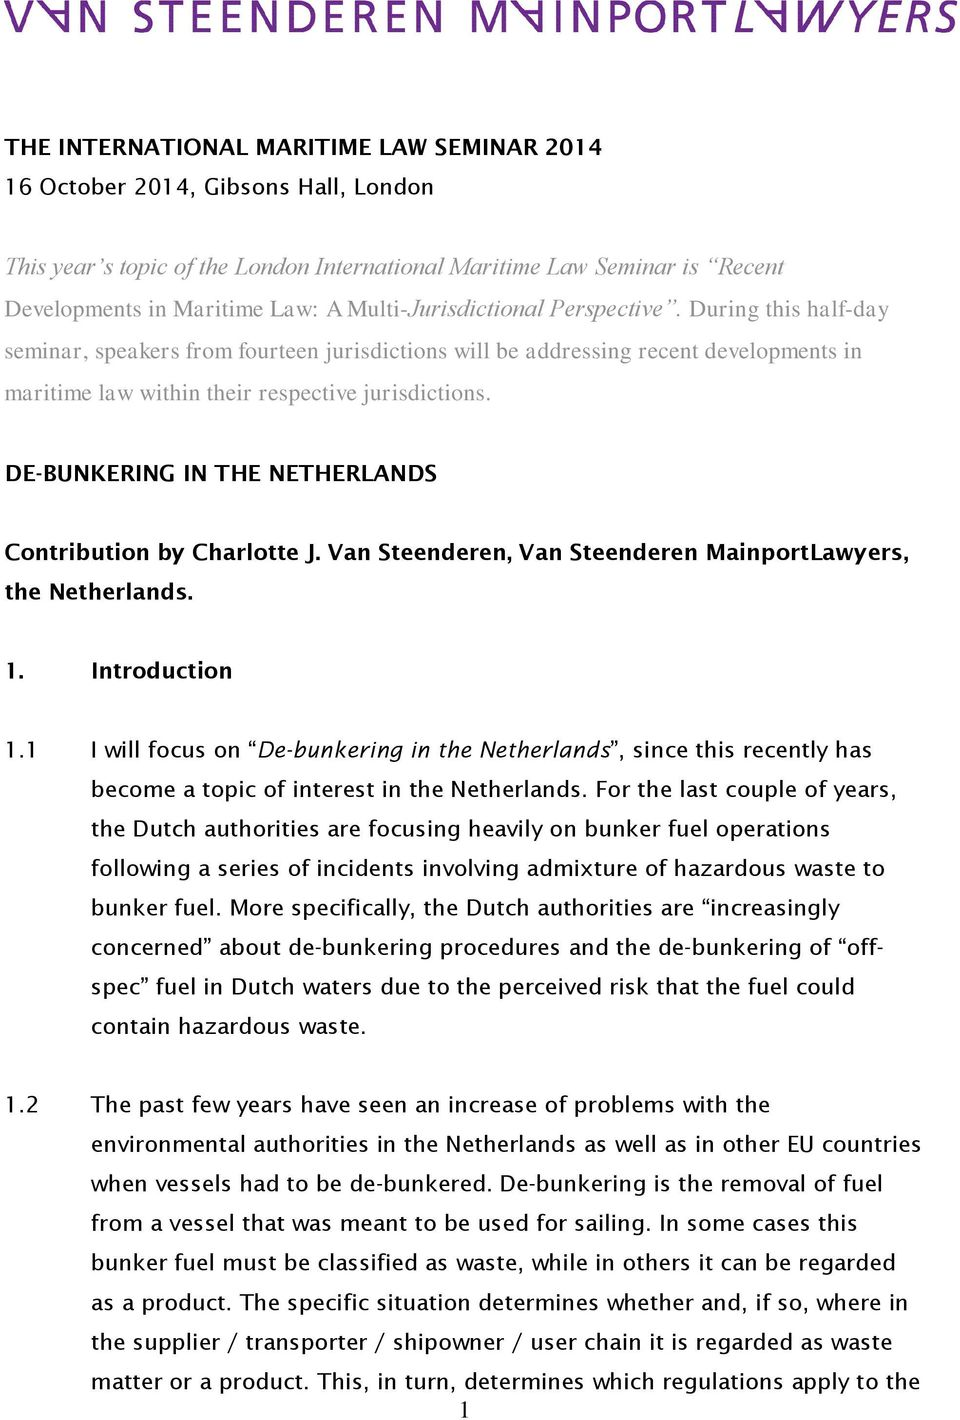 DE-BUNKERING IN THE NETHERLANDS Contribution by Charlotte J. Van Steenderen, Van Steenderen MainportLawyers, the Netherlands. 1. Introduction 1.